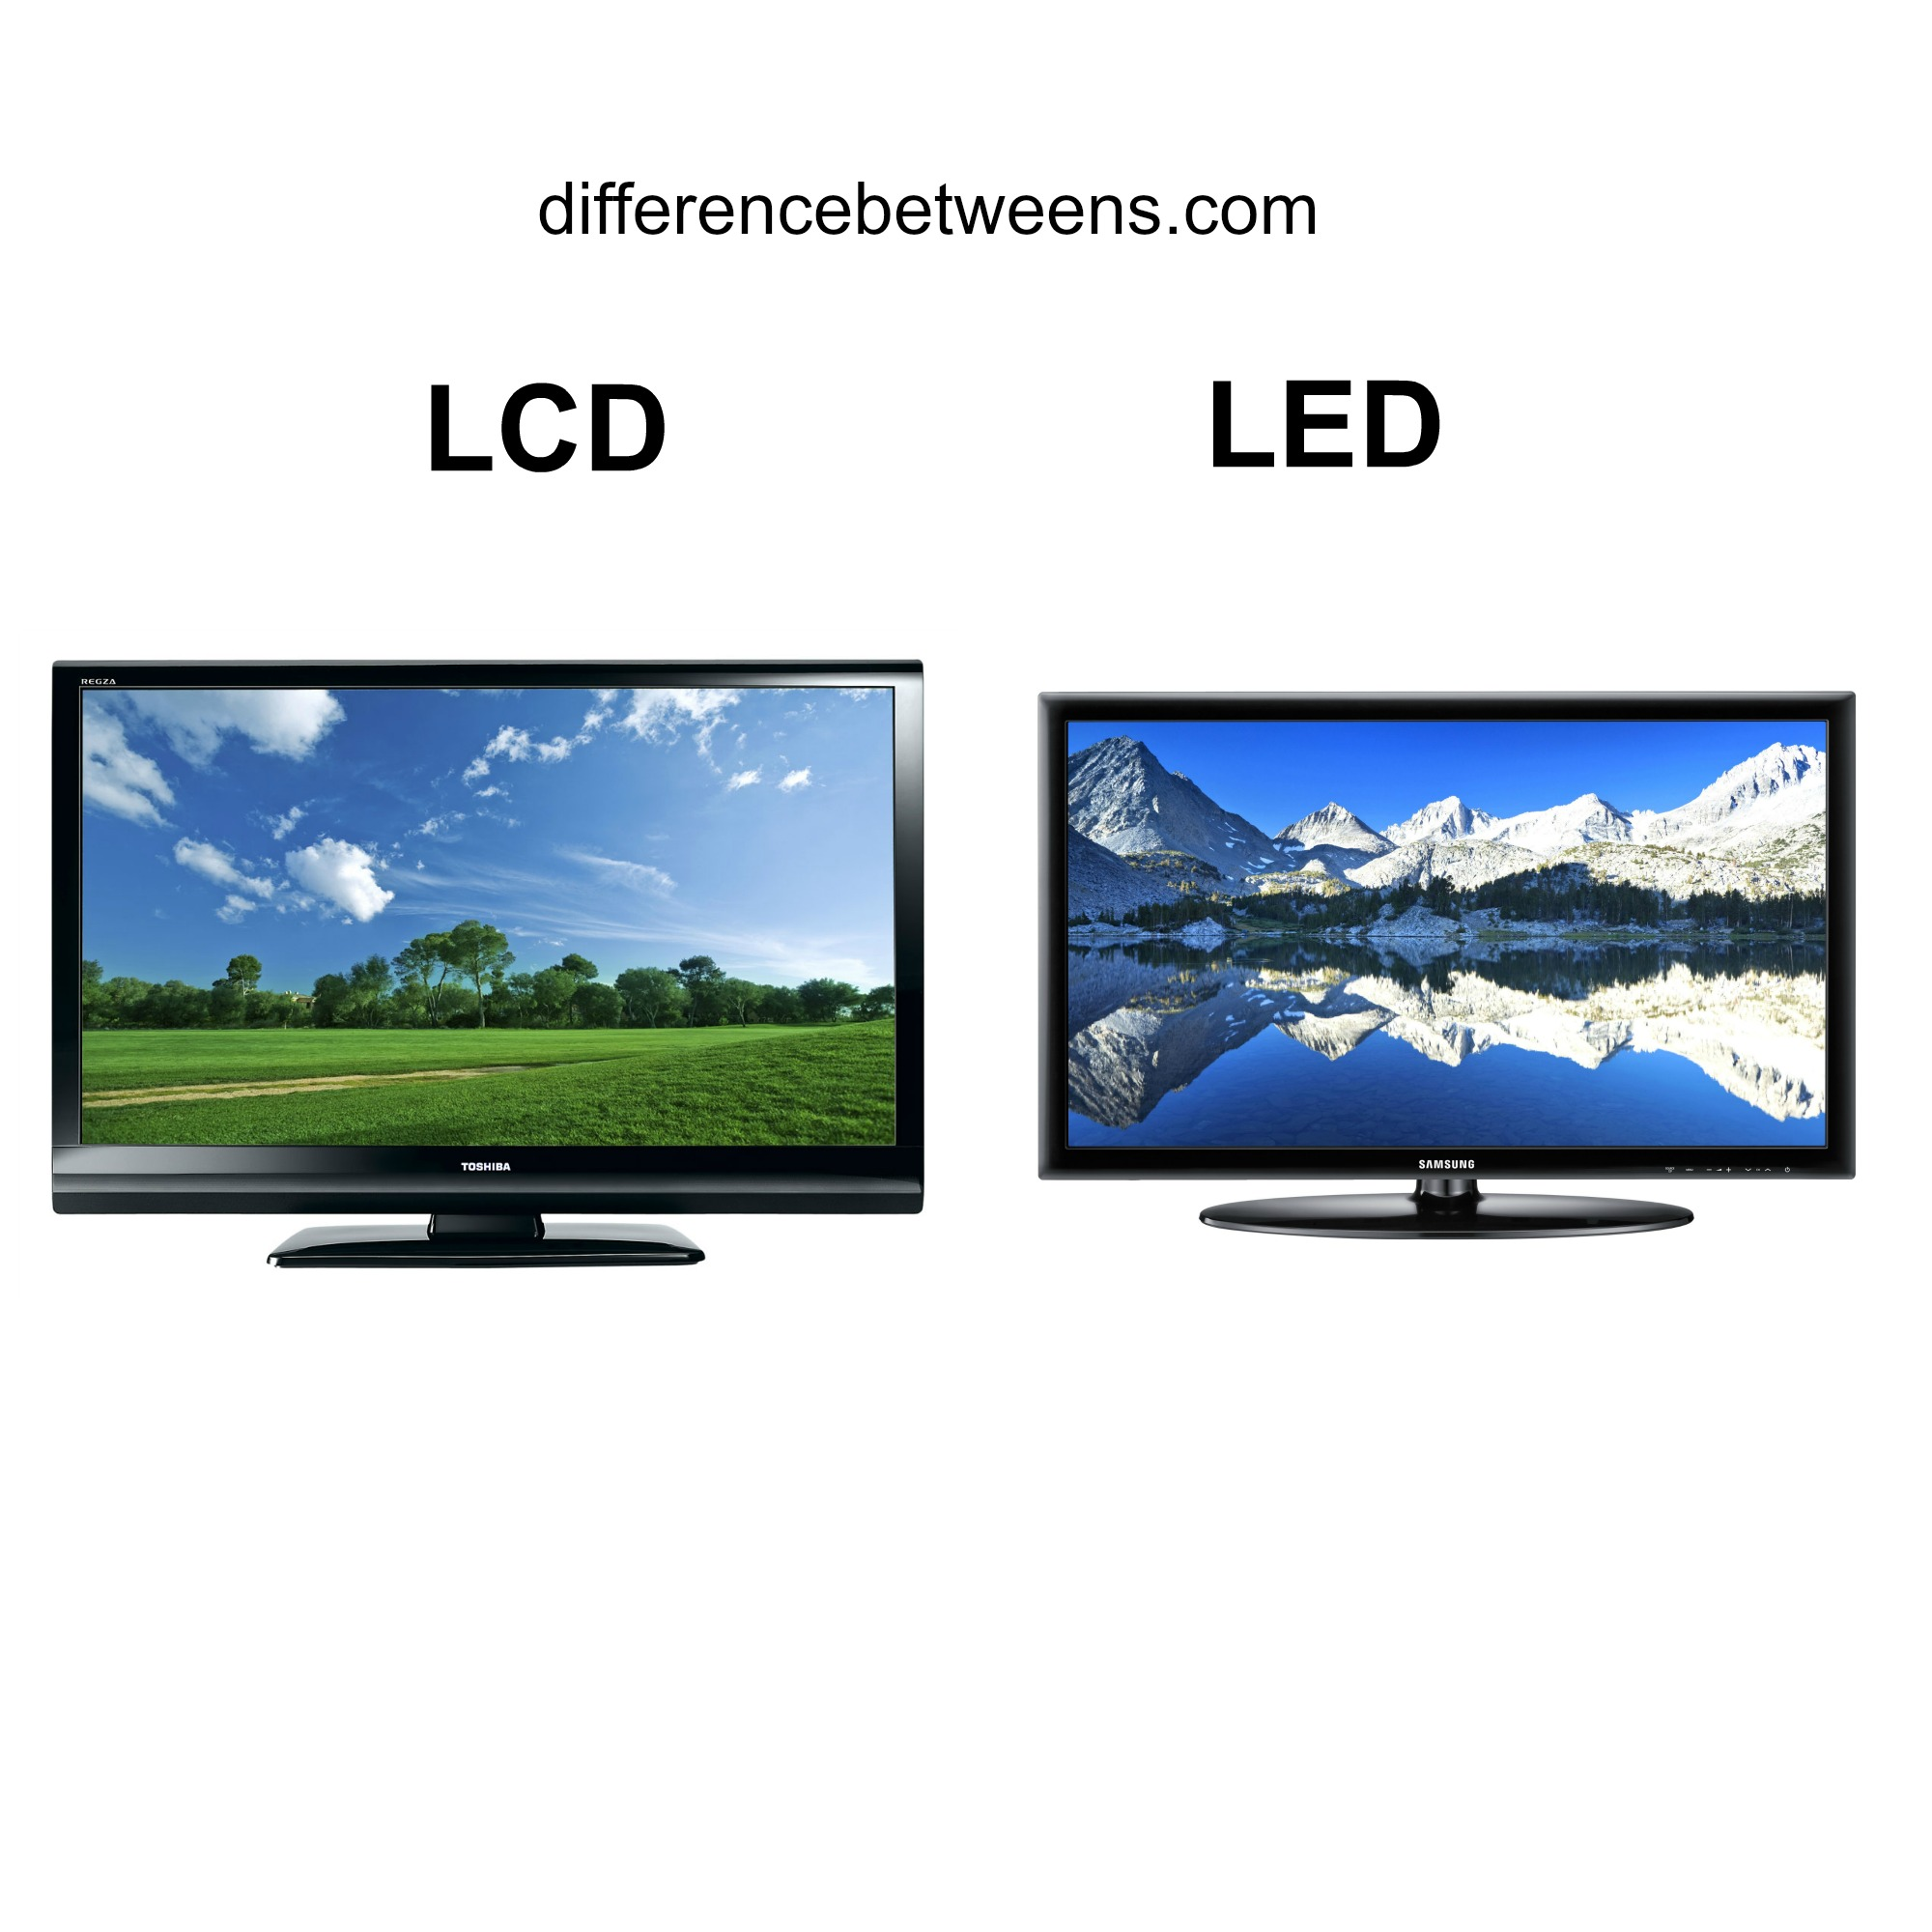 Lcd Vs Led Tv